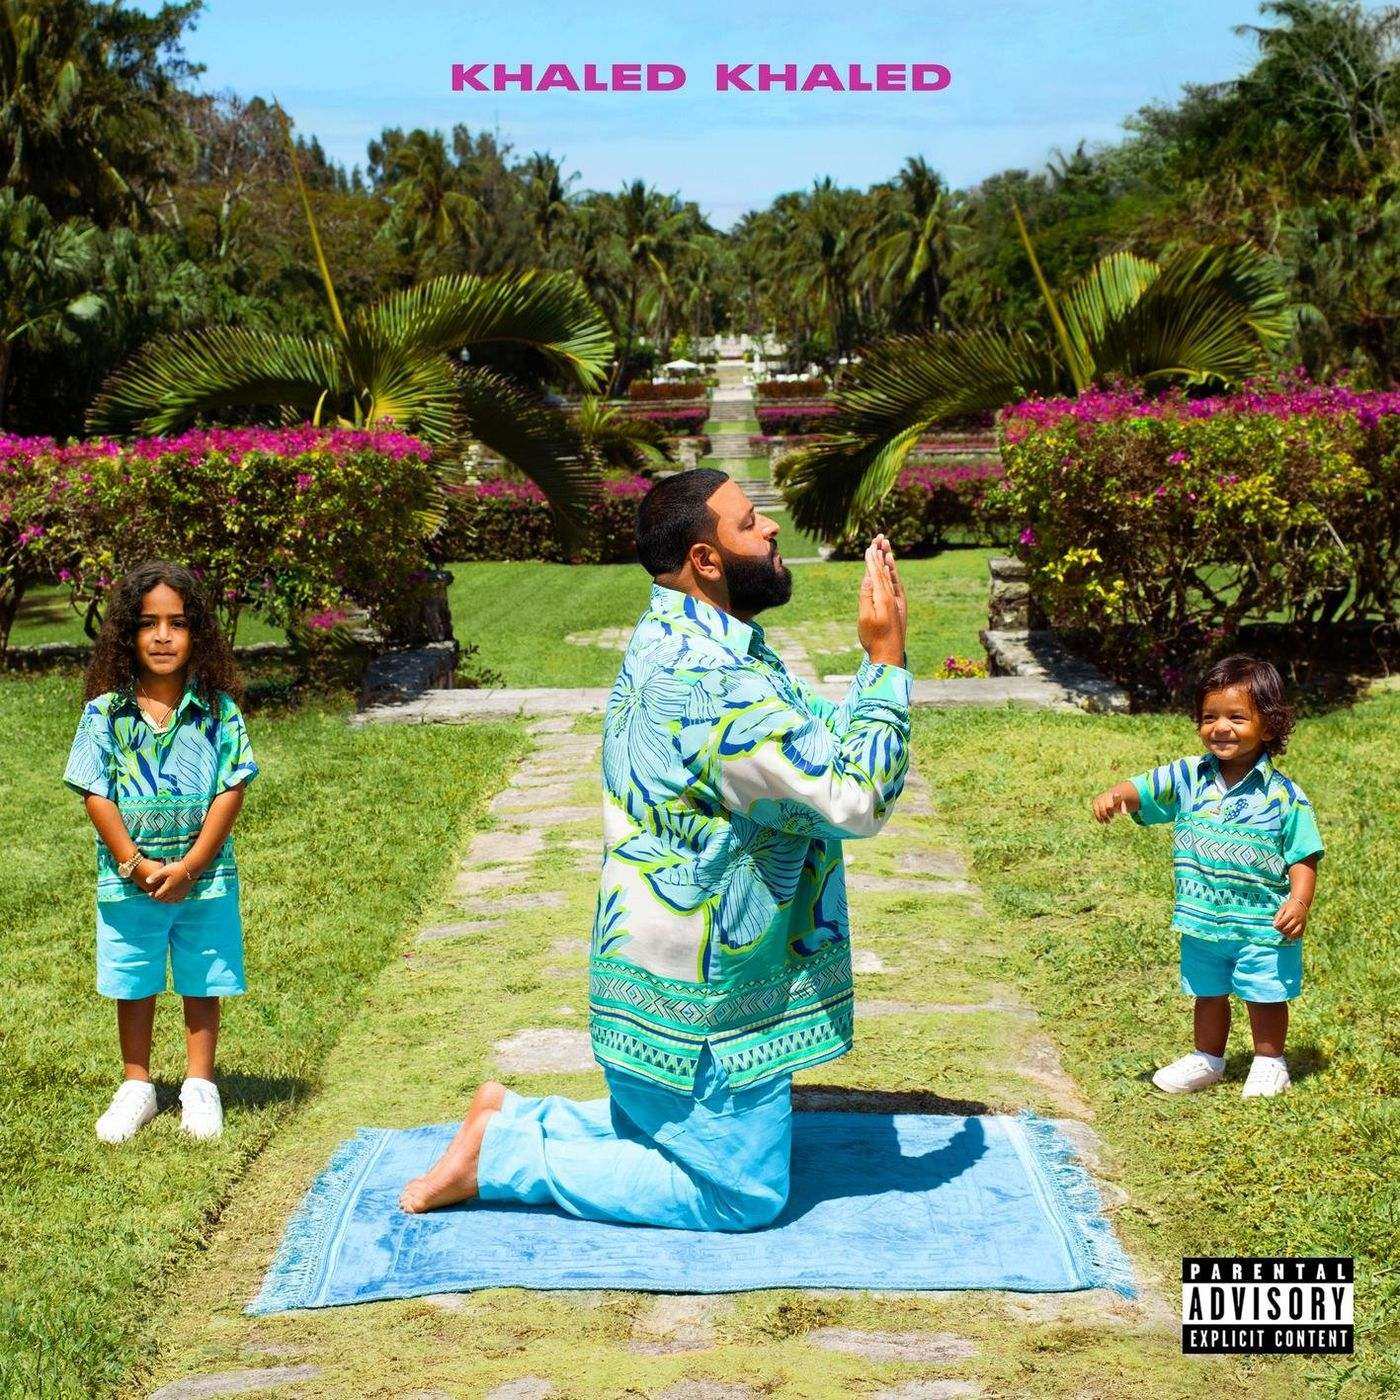 Cover DJ Khaled - KHALED KHALED (Explicit) album